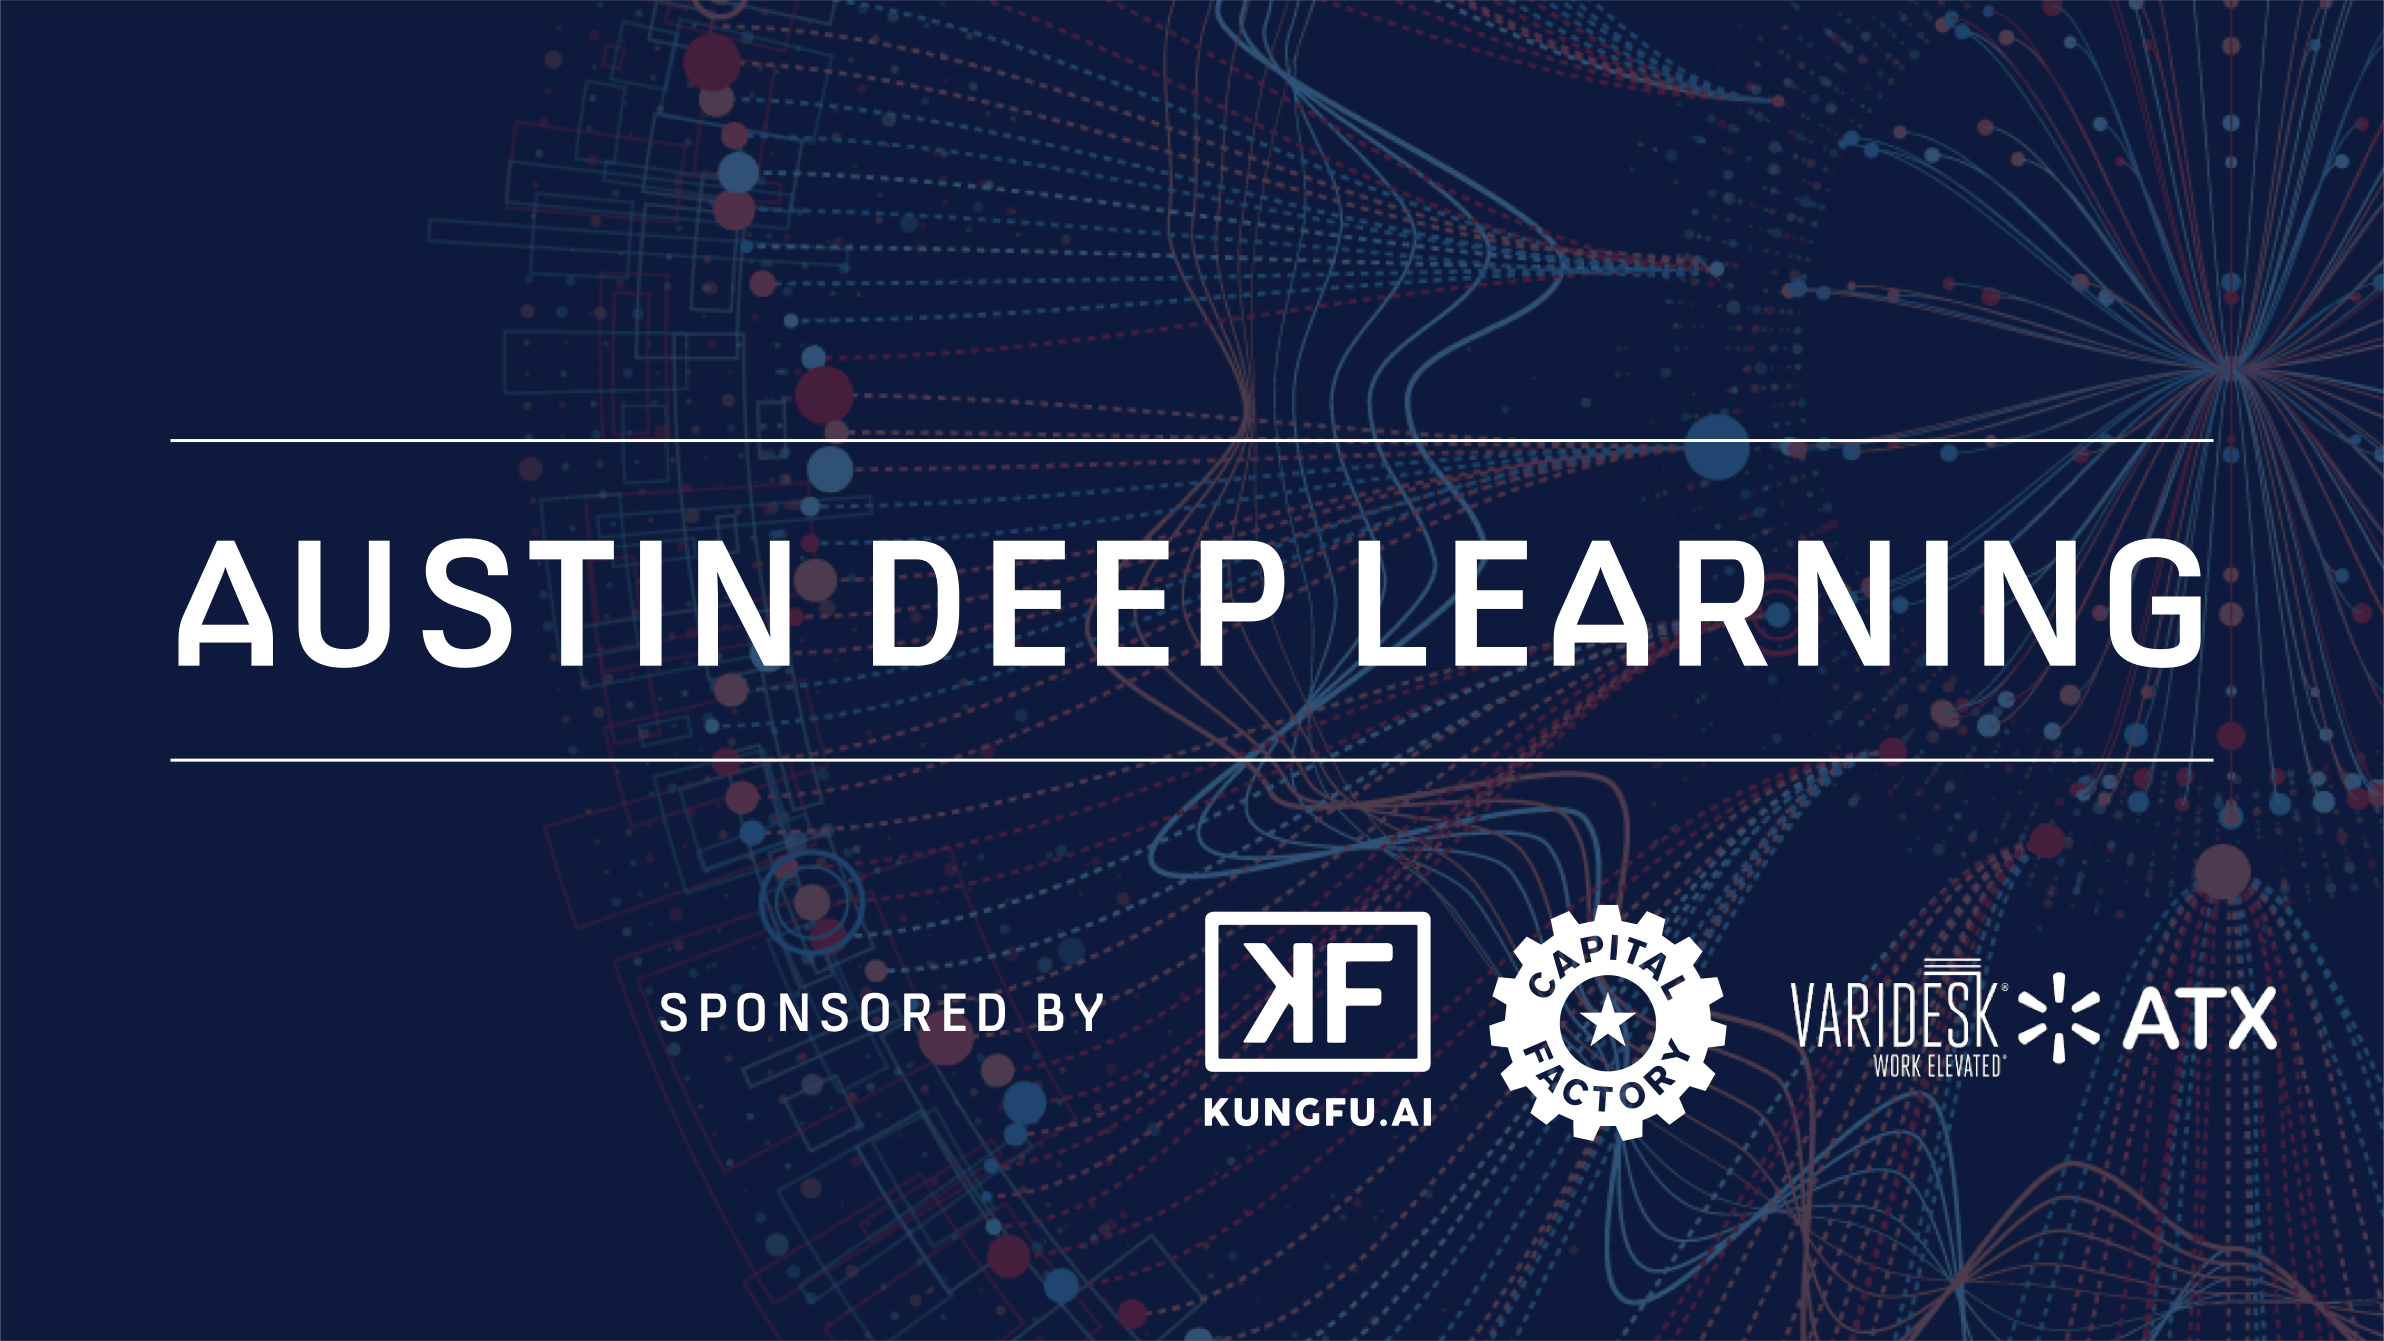 Austin Deep Learning